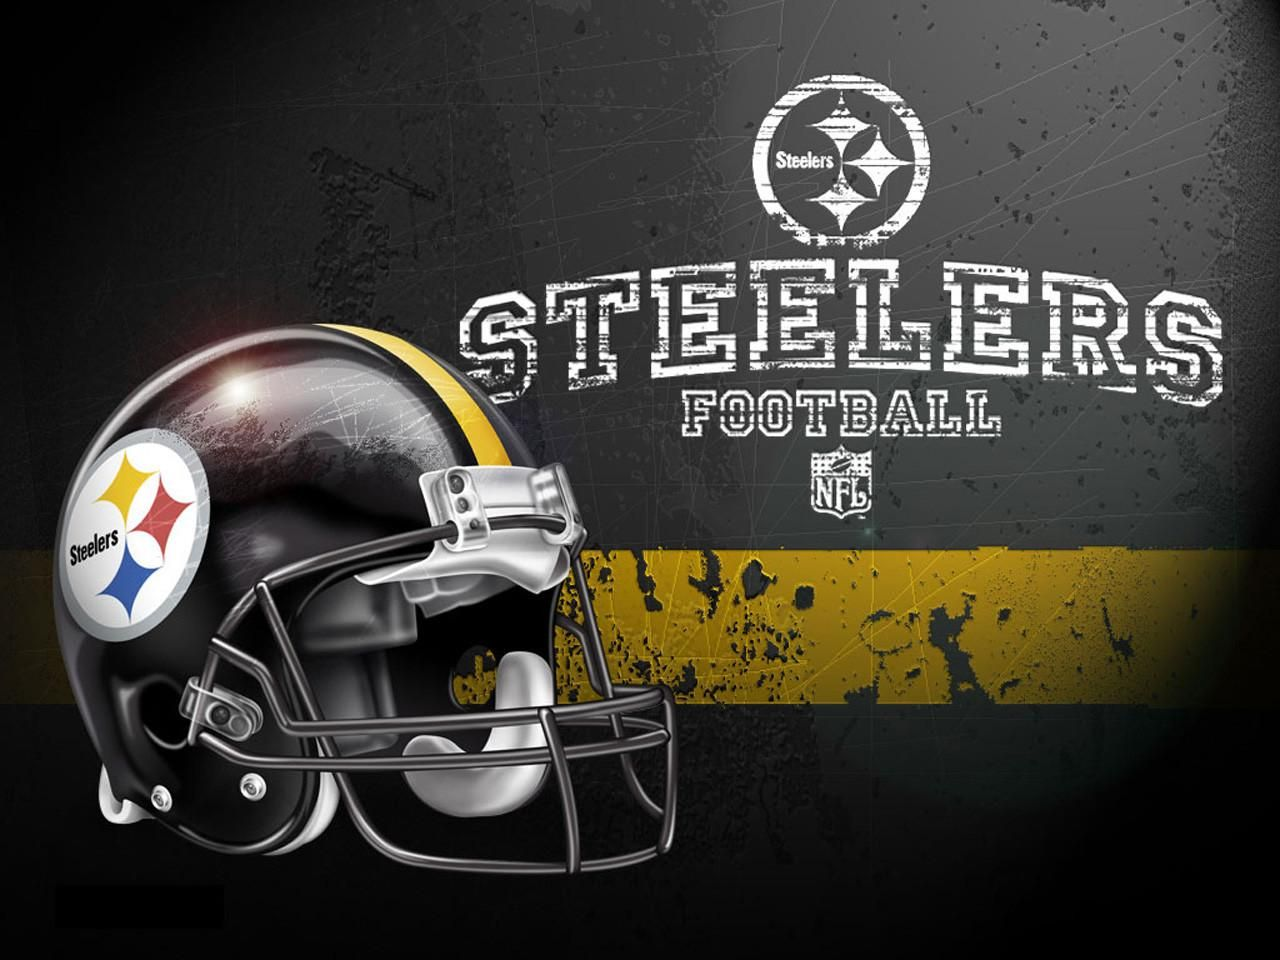 8 pittsburgh steelers wallpapers pittsburgh steelers backgrounds 8 pittsburgh steelers wallpapers pittsburgh steelers backgrounds amipublicfo Image collections